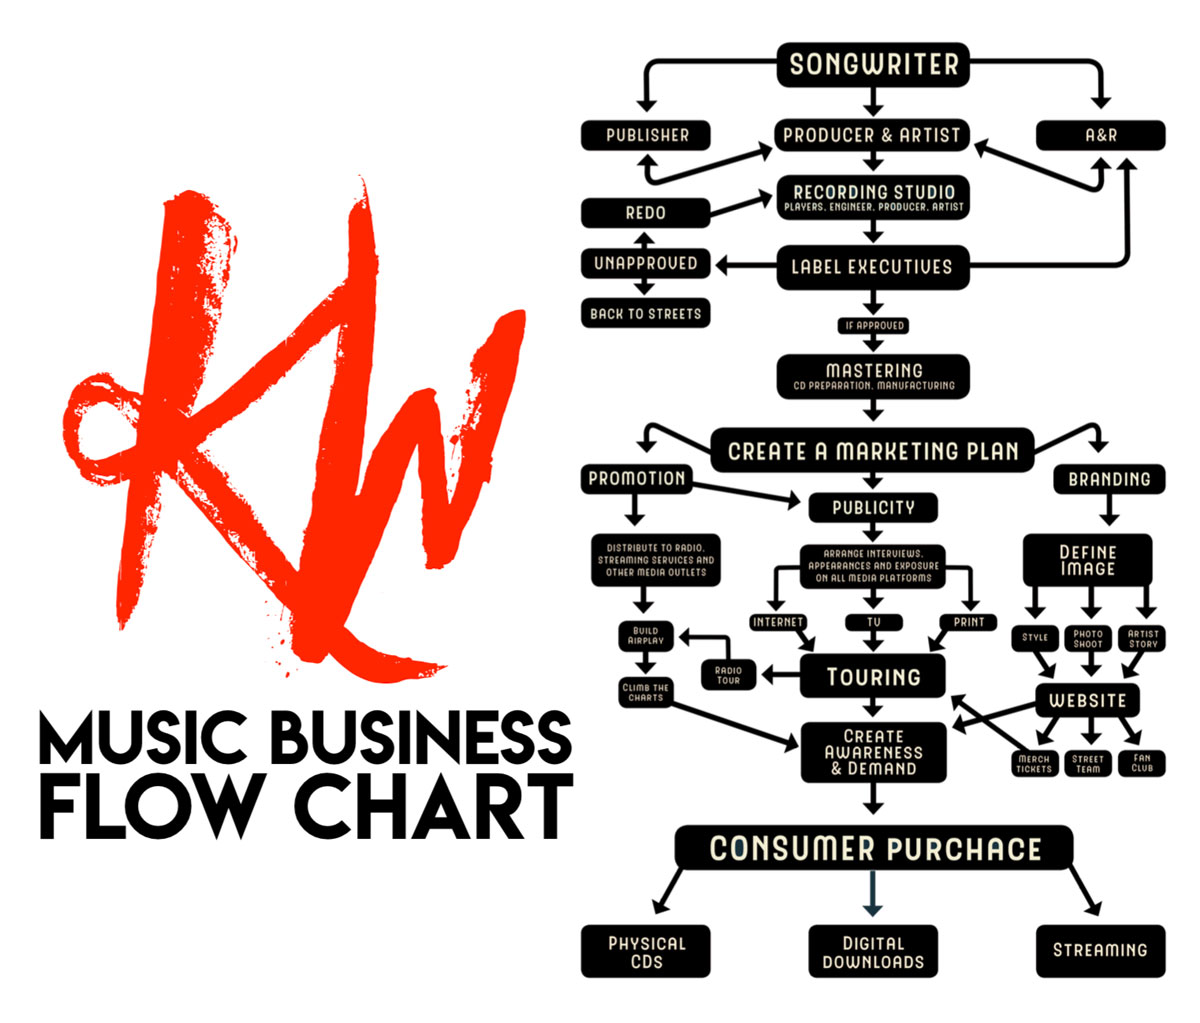 Kirt Webster explains the flow of the country music business with a helpful flow chart.